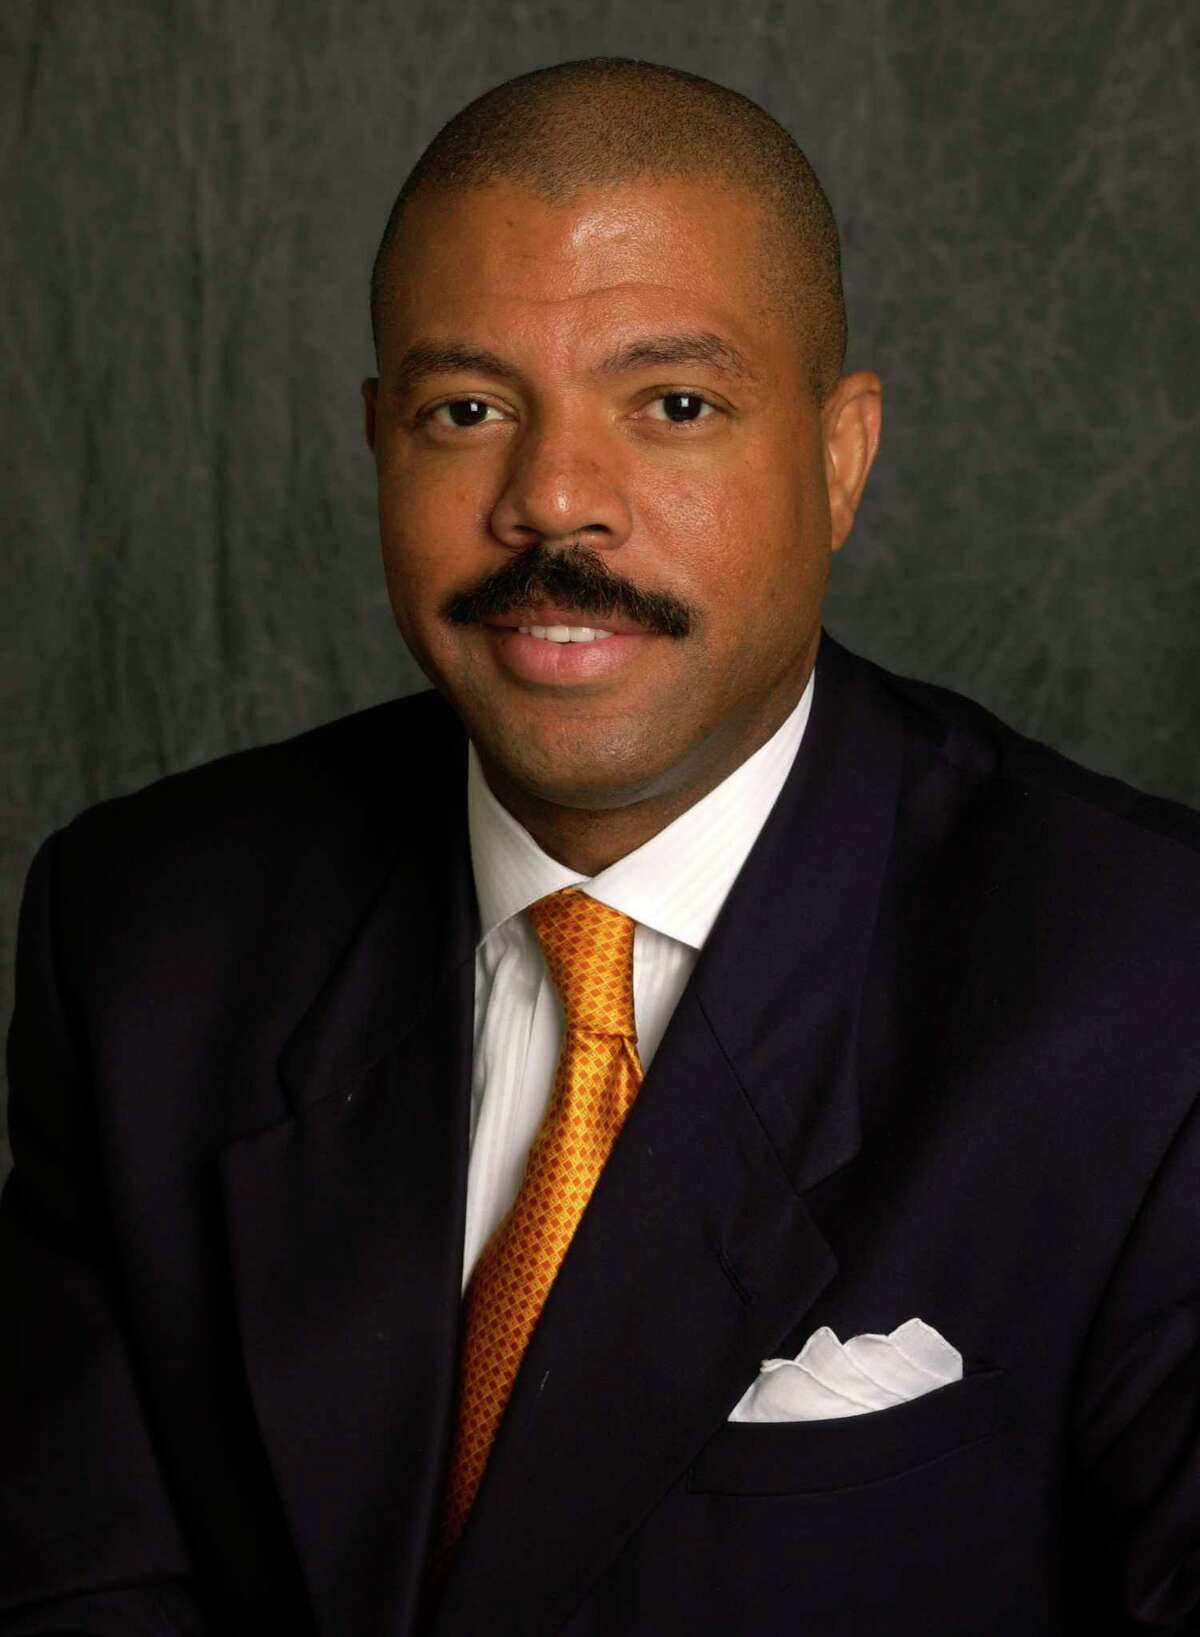 State Sen. Borris Miles, D-Houston